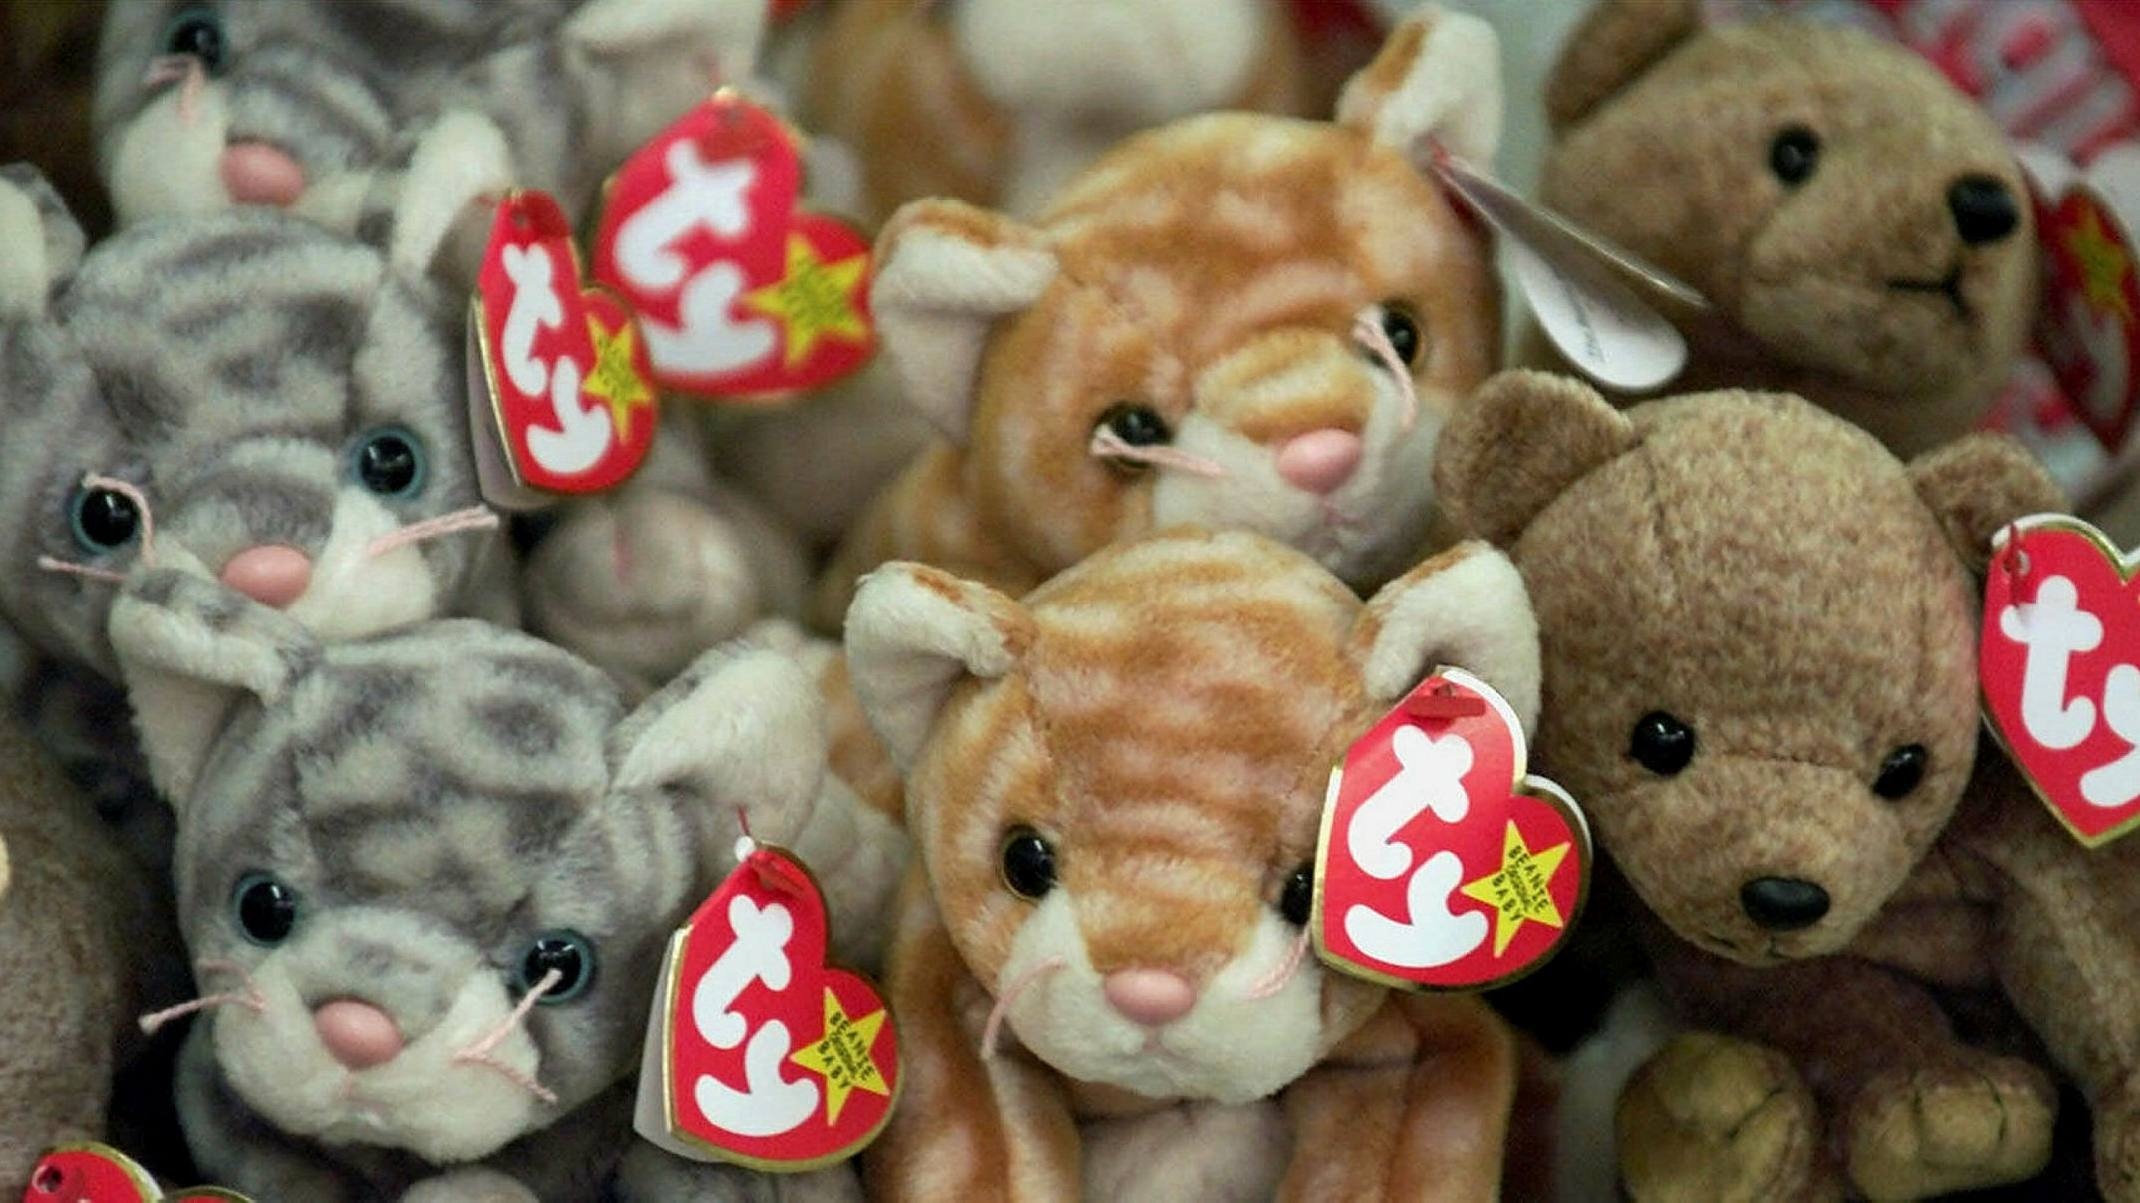 Looking back at the Beanie Baby bubble